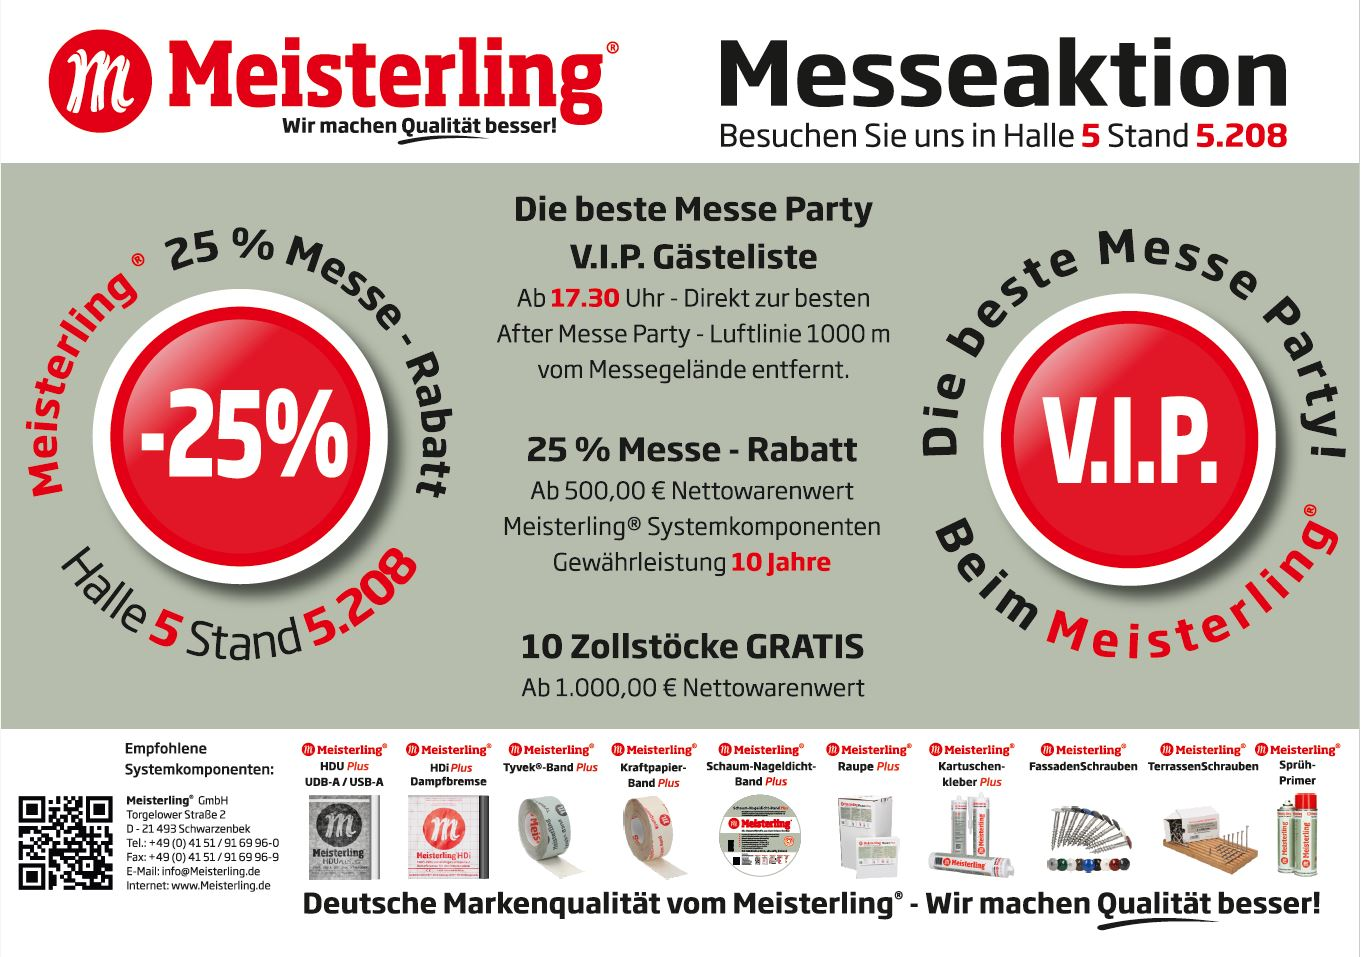 Die beste Messe Party - beim Meisterling®